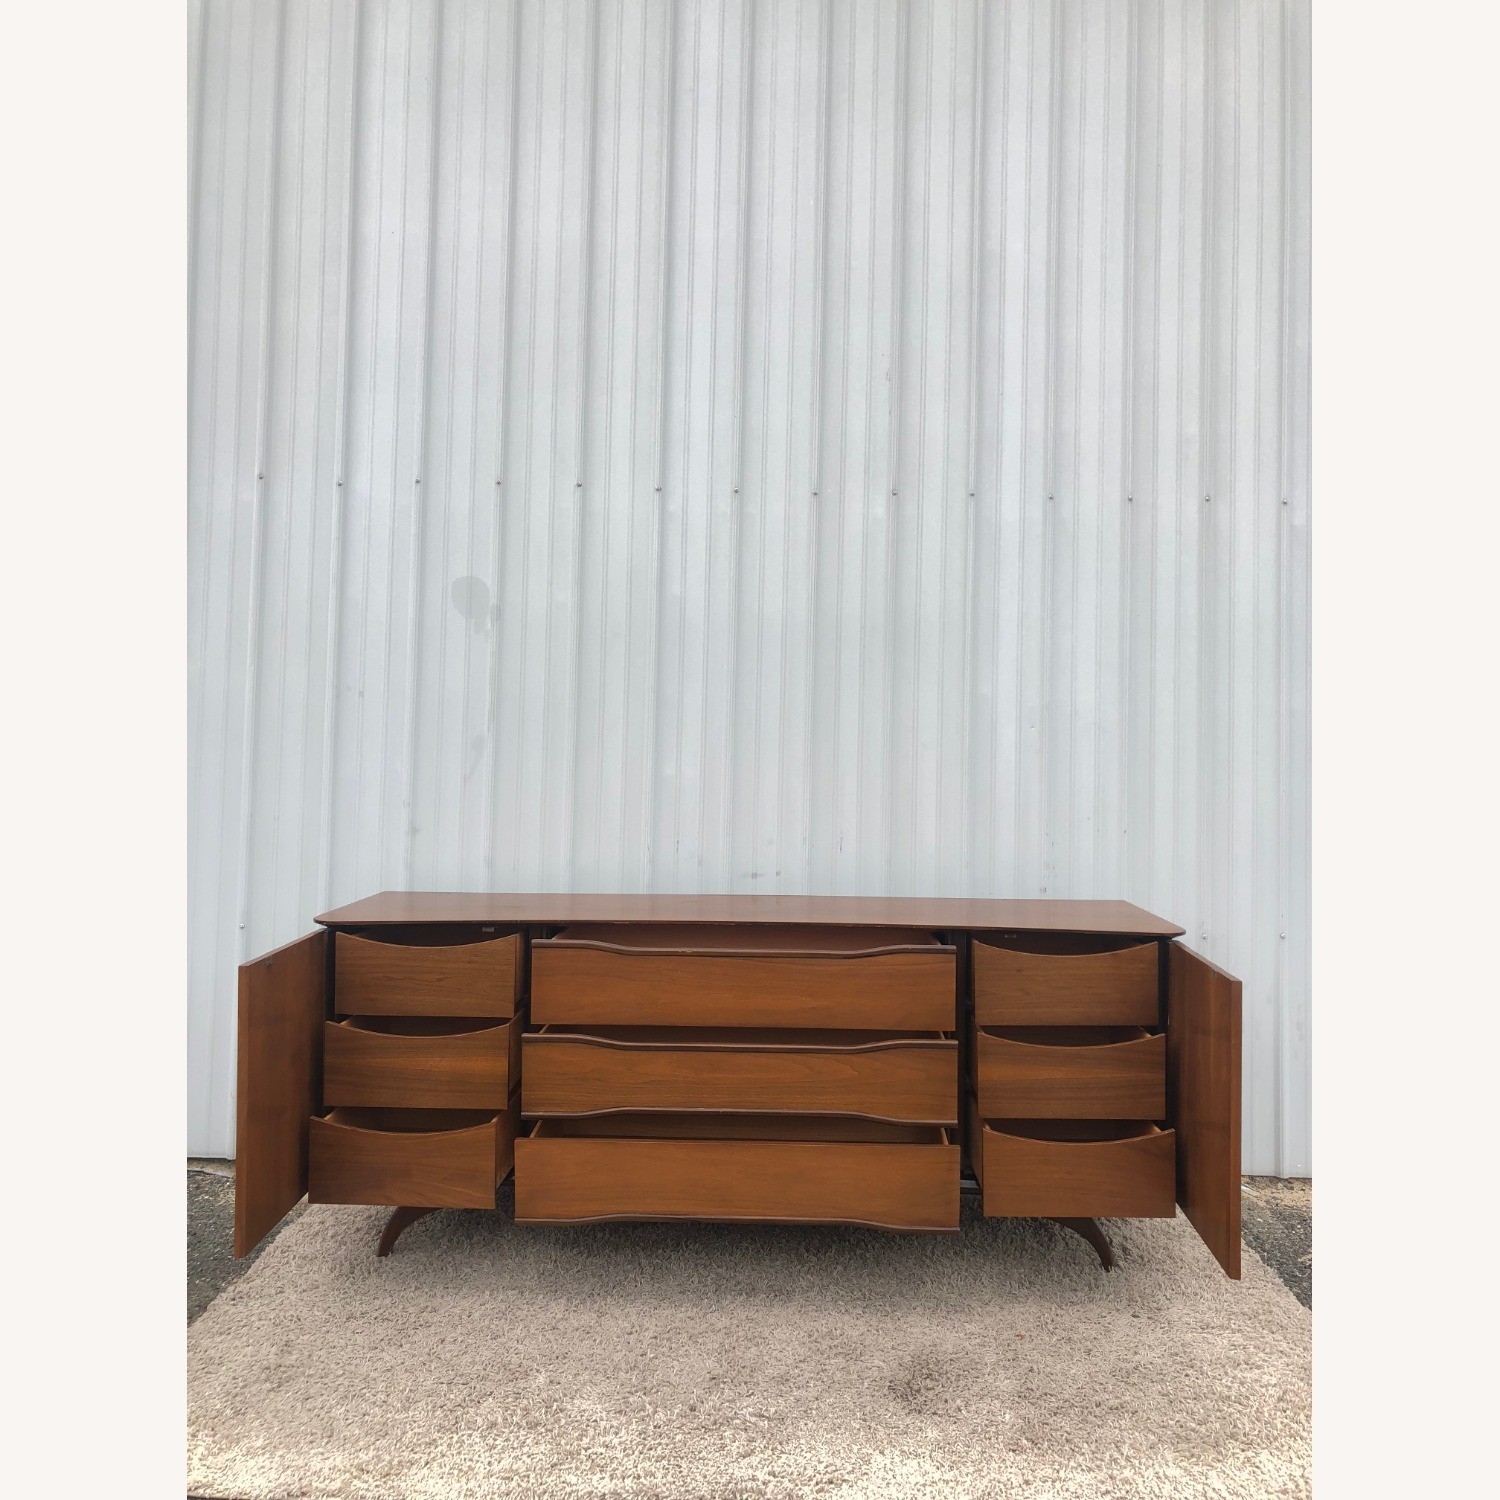 Mid Century Lowboy Dresser with Brasss Accents - image-17